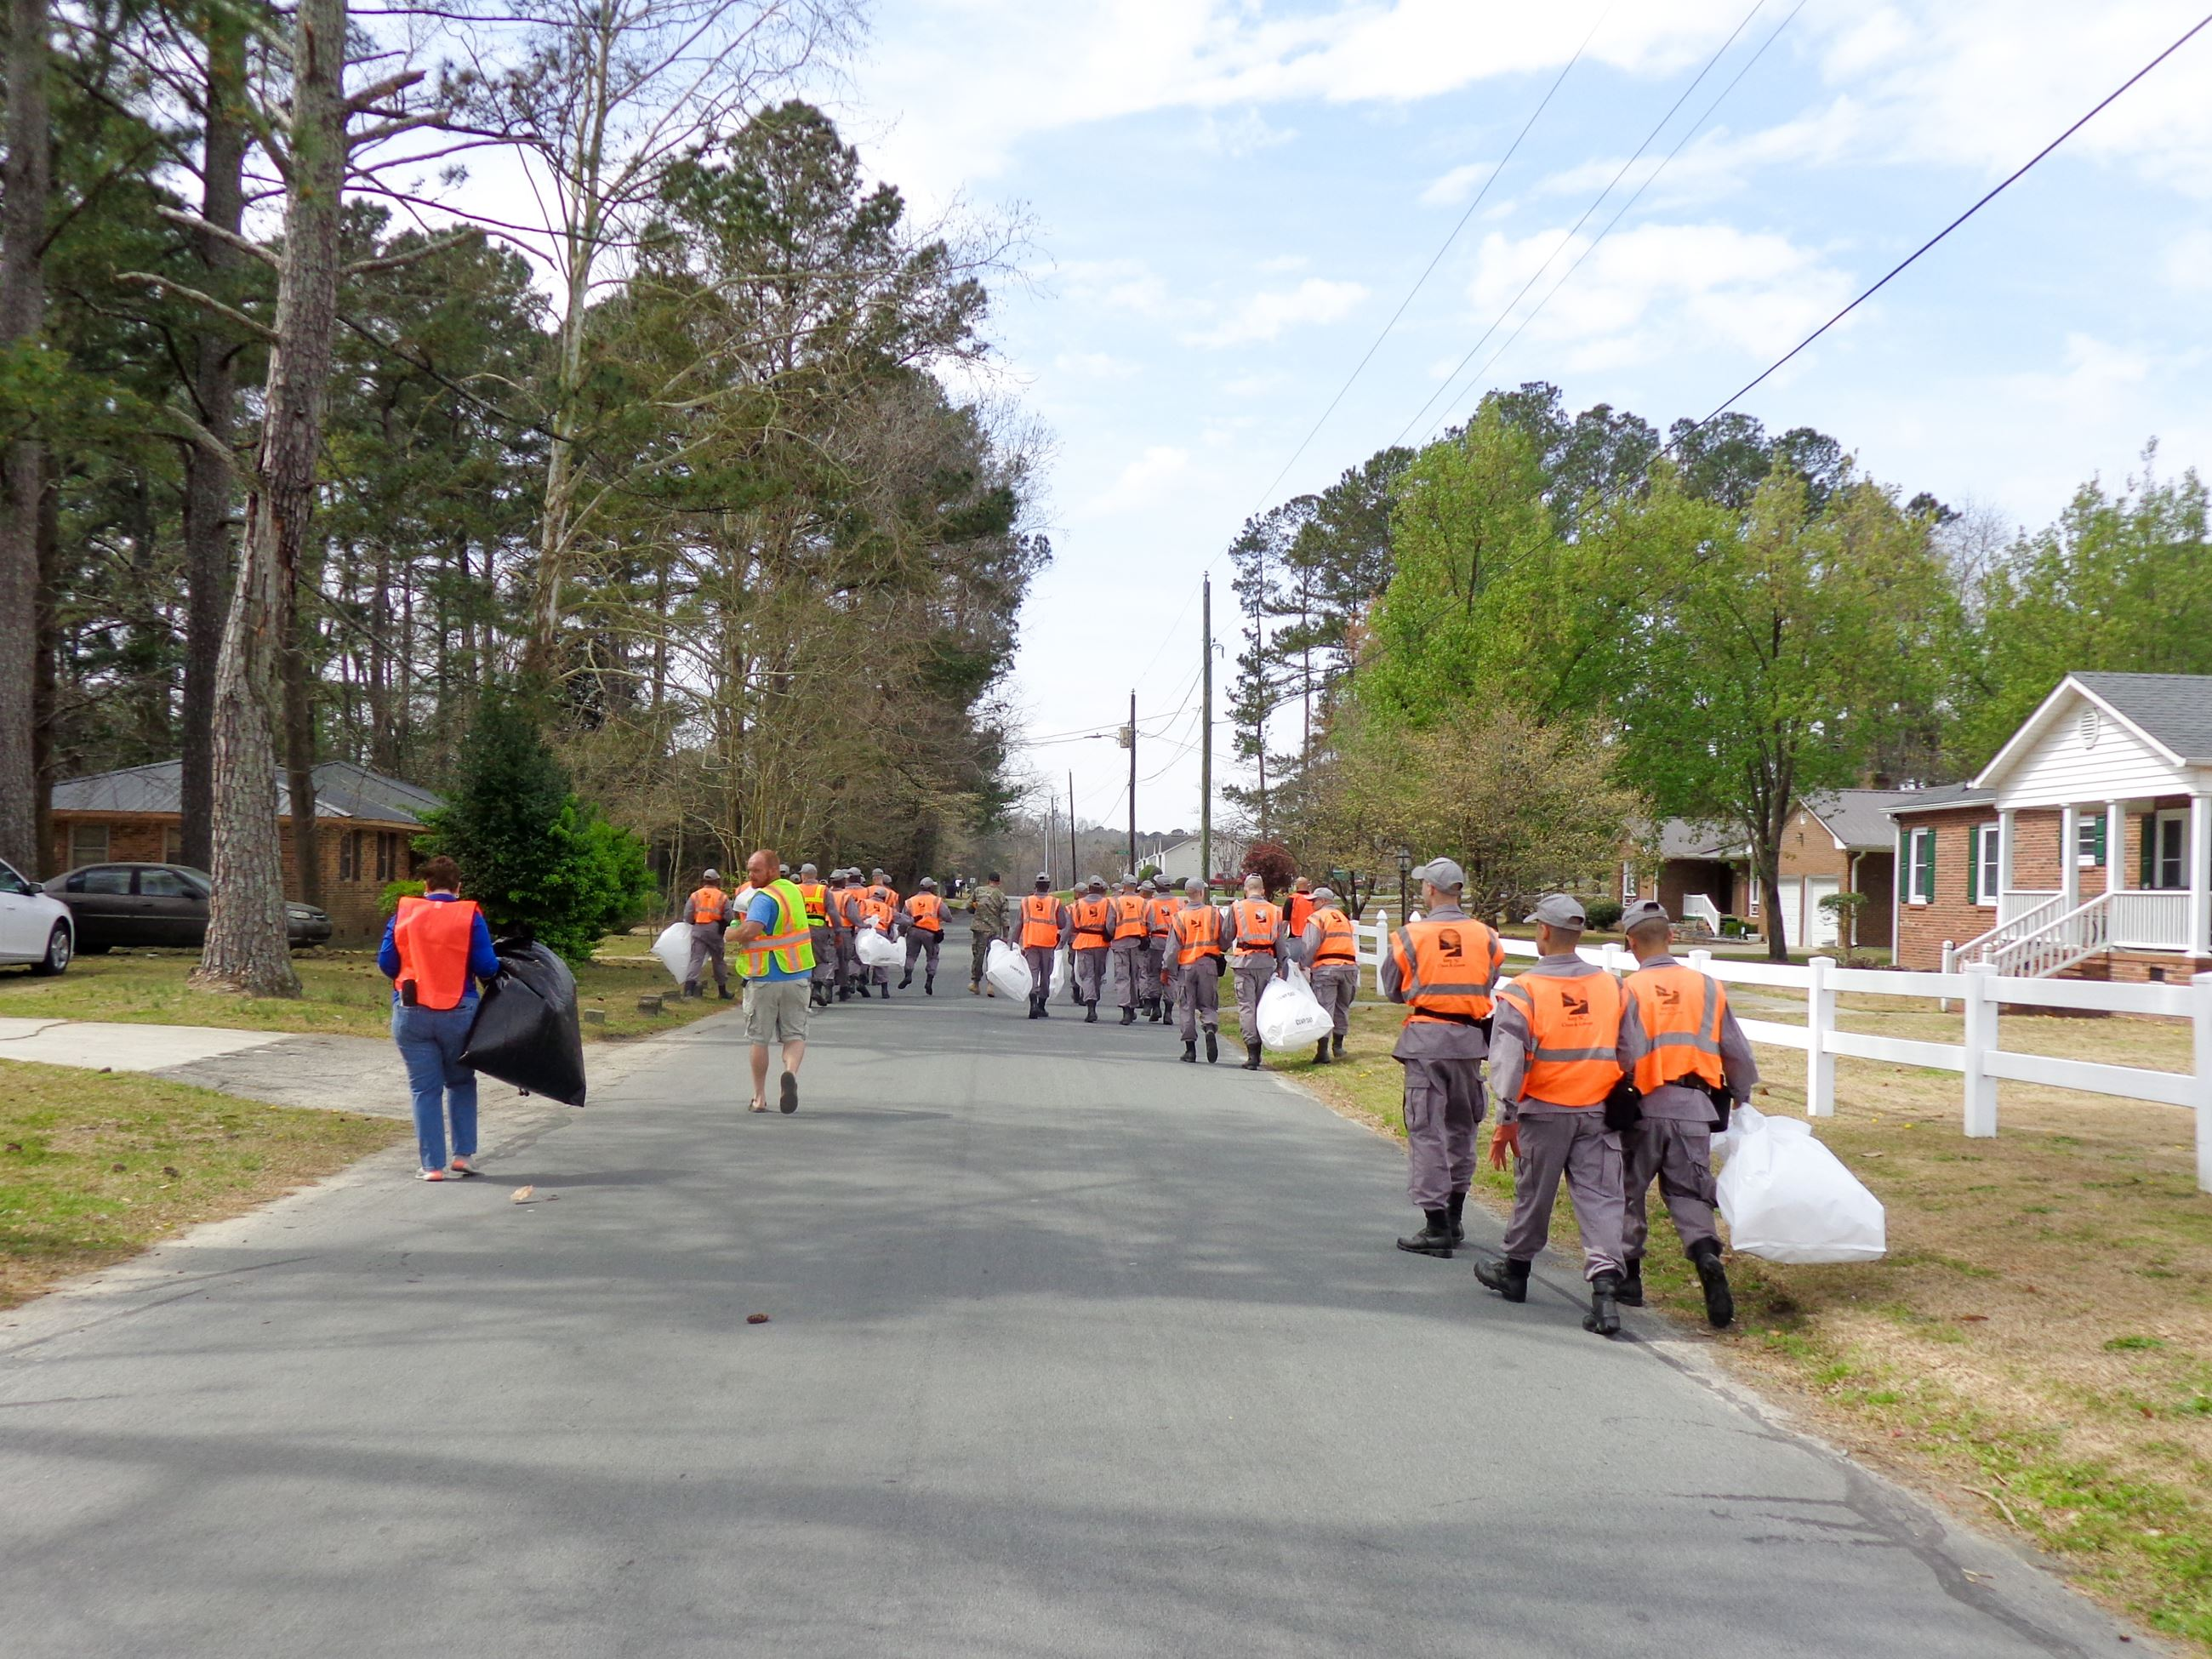 Clean Up Crew Walking on Road